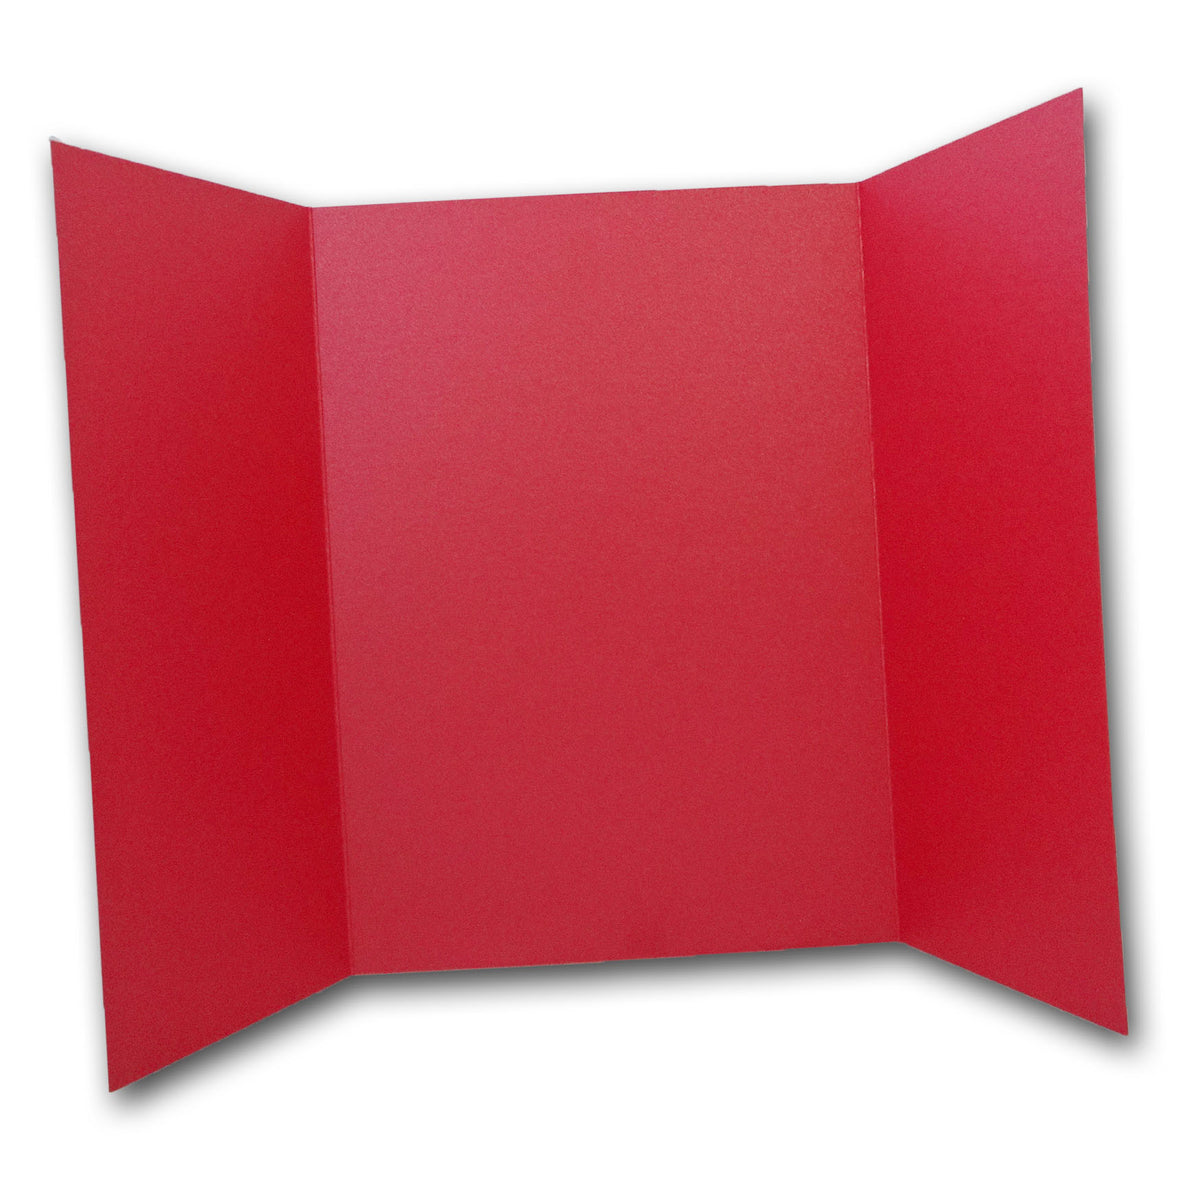 Shimmery Red 5x7 Gatefold Discount Card Stock DIY Invitations